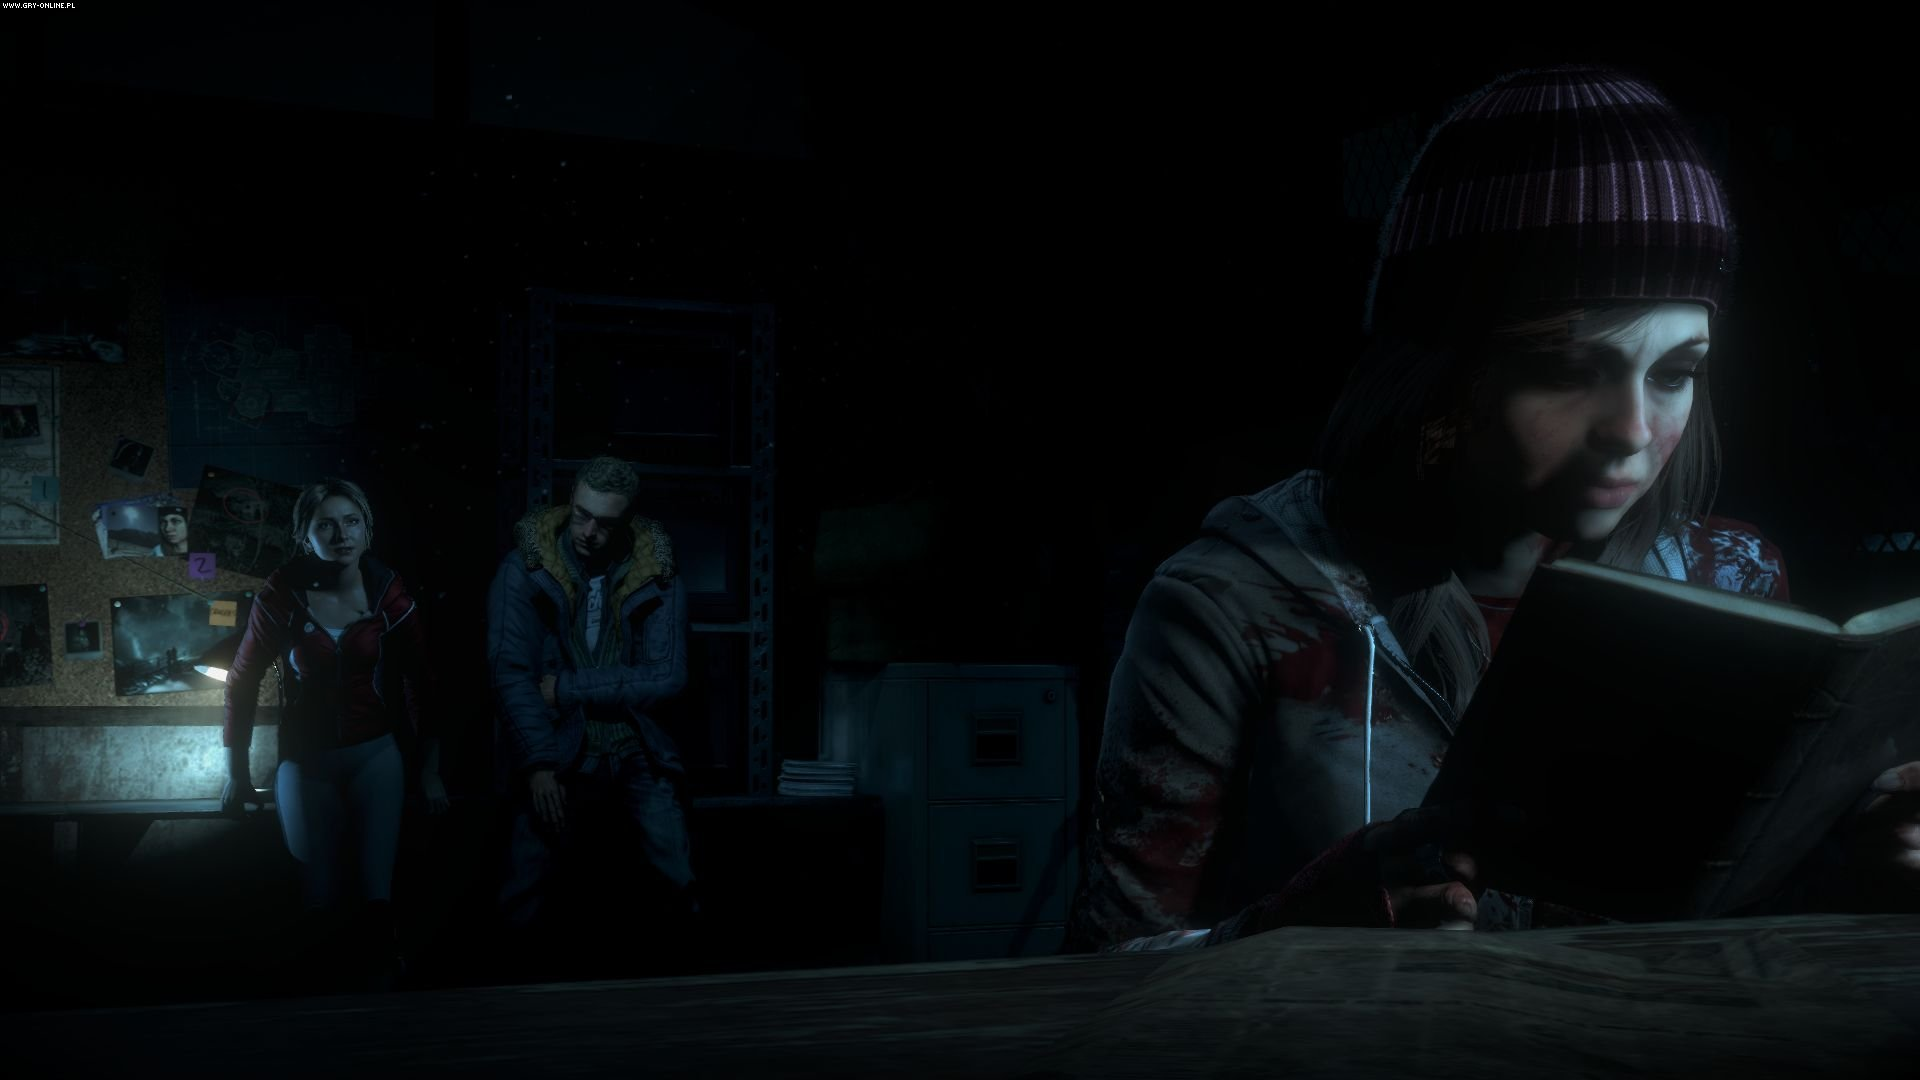 Until Dawn PS4 Games Image 37/91, Supermassive Games, Sony Interactive Entertainment